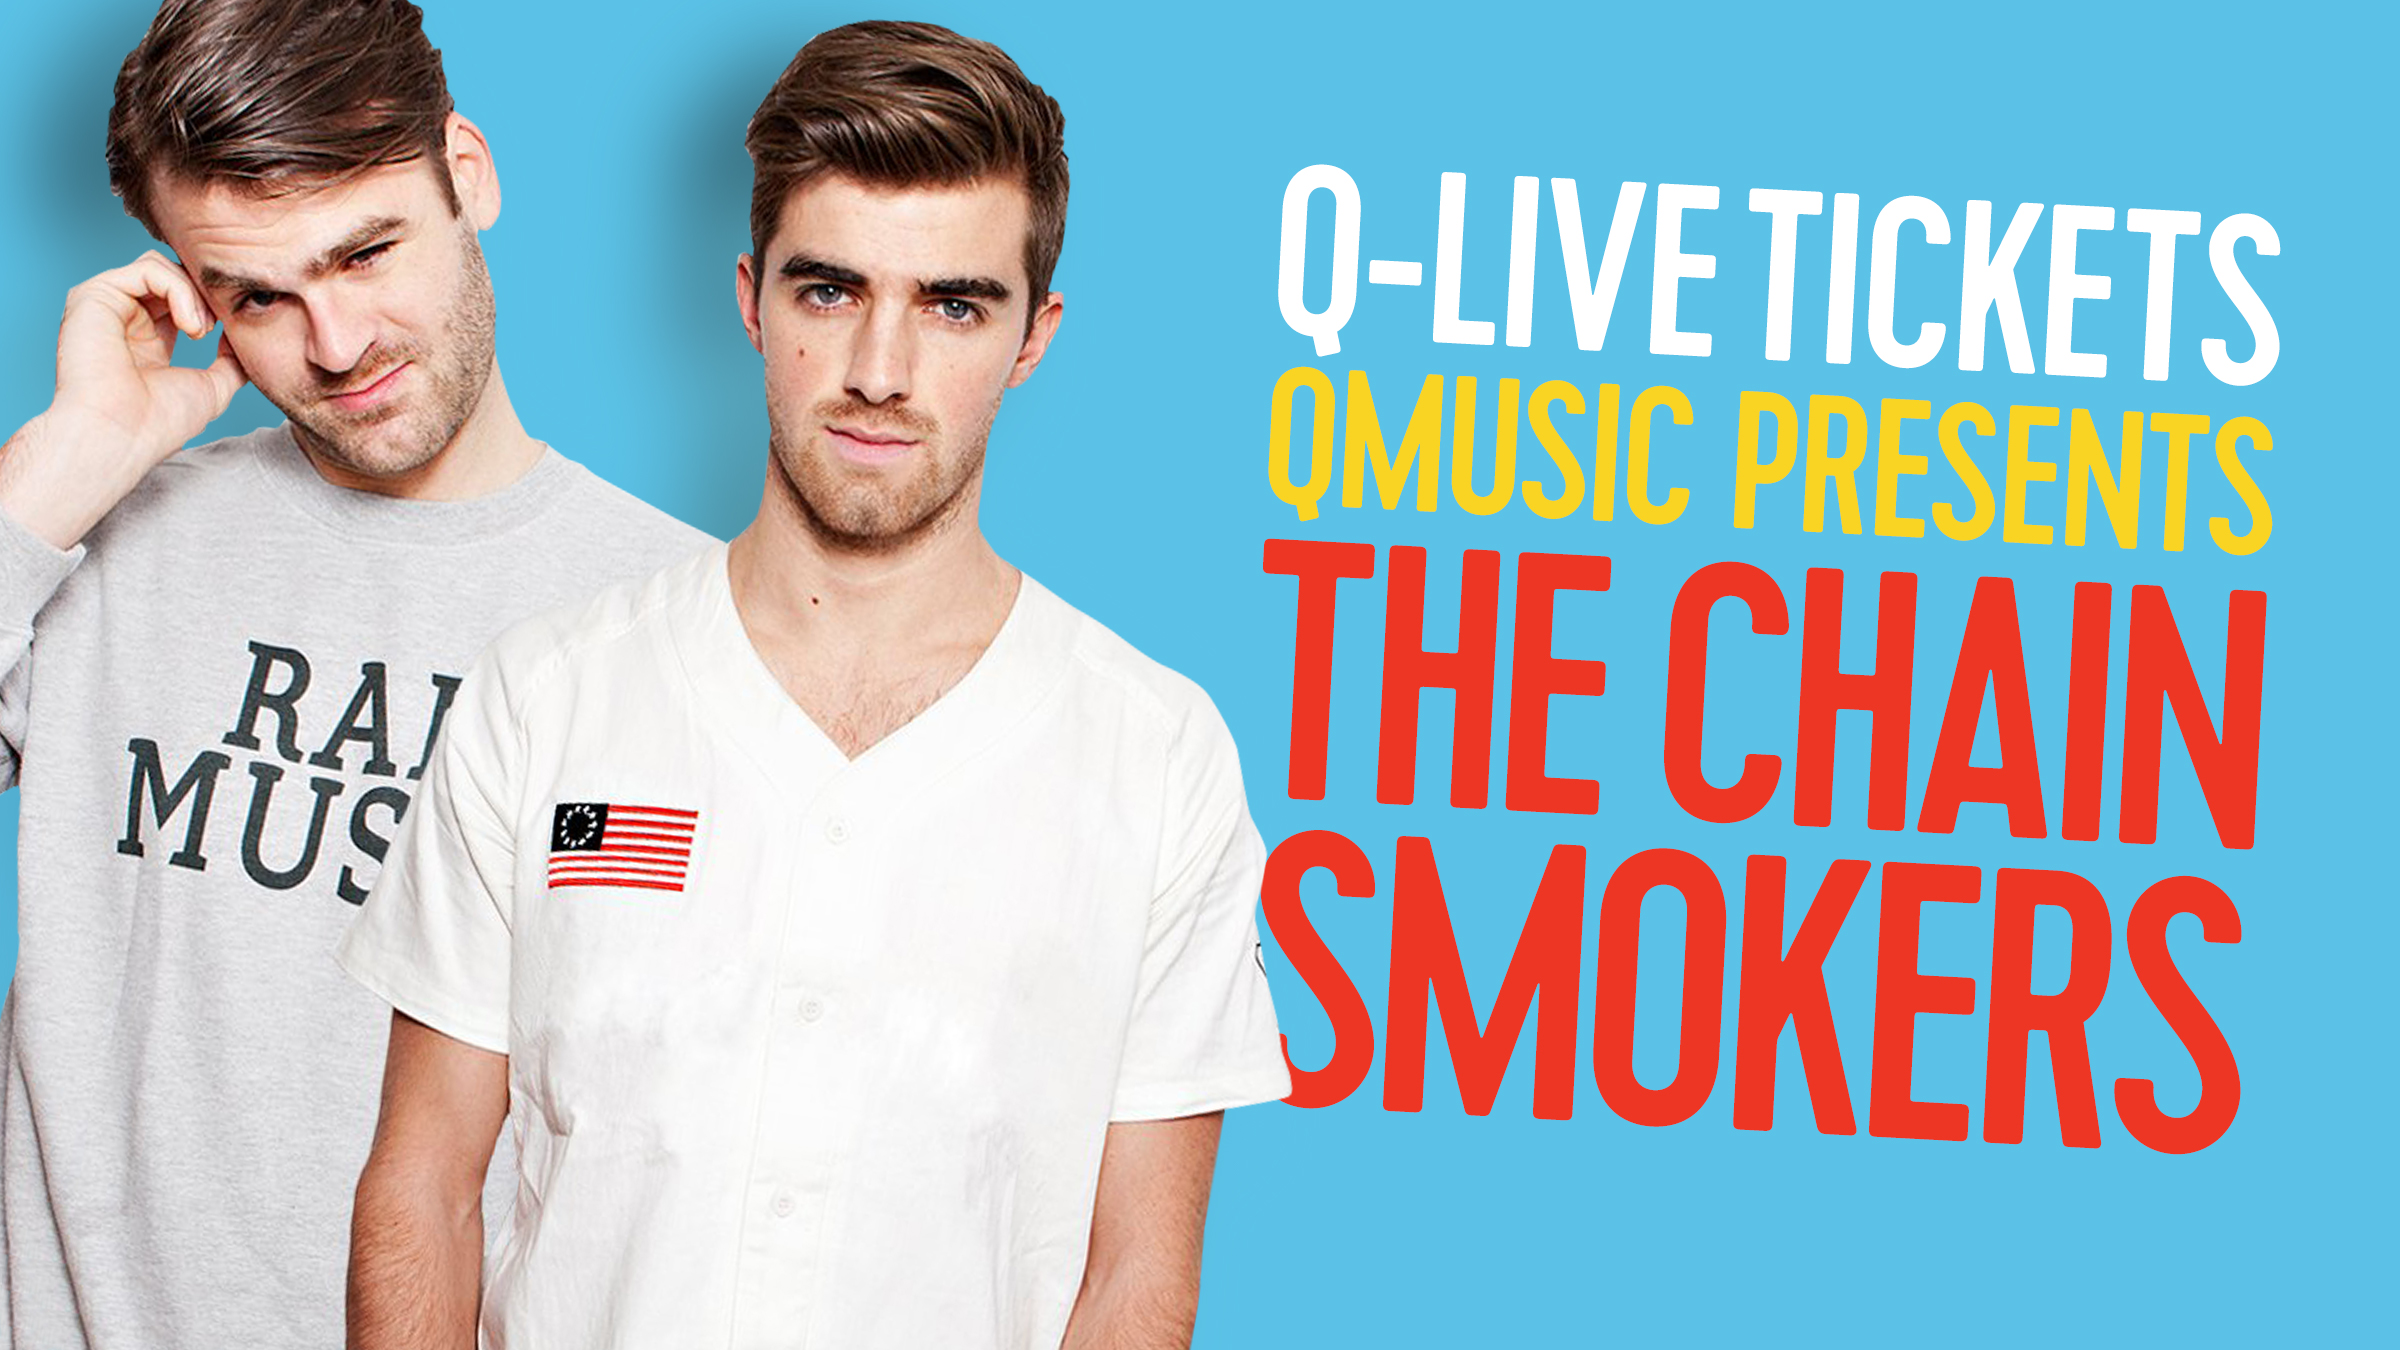 Qmusic teaser chainsmokers